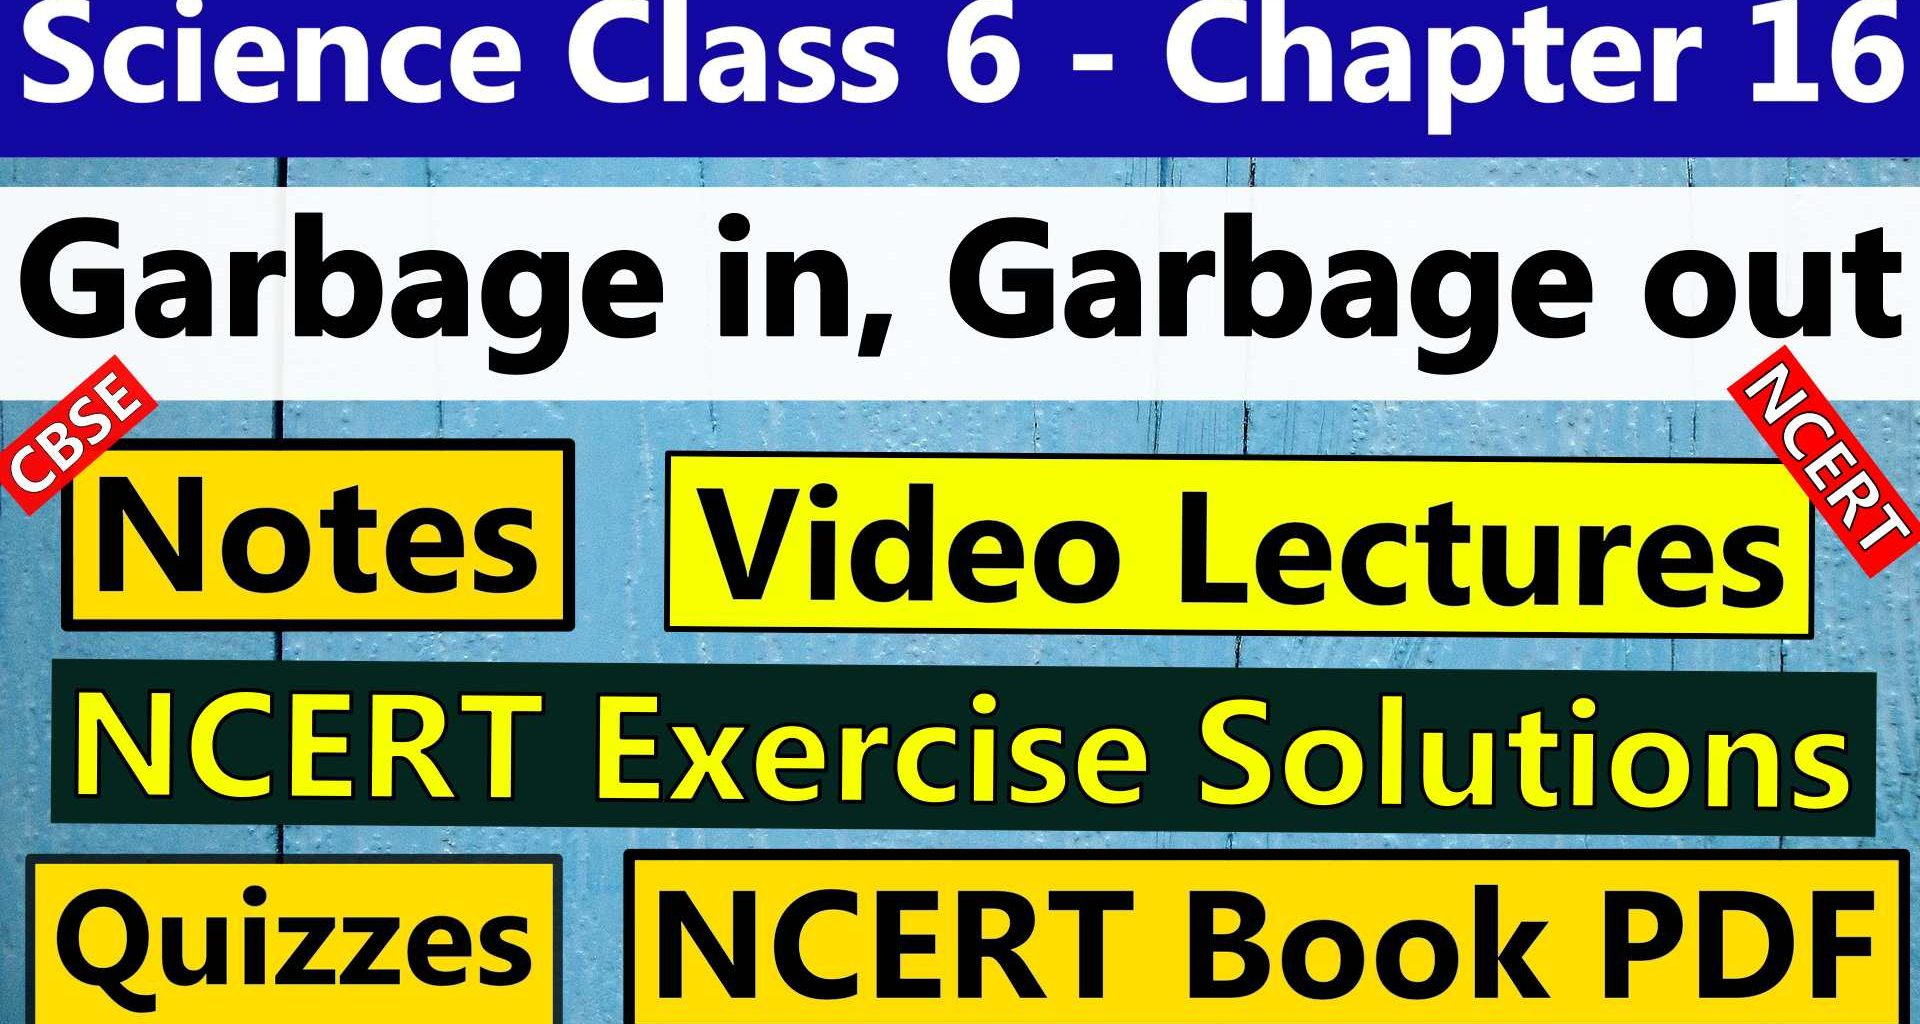 Science Class 6 - Chapter 16 -Garbage in, Garbage out